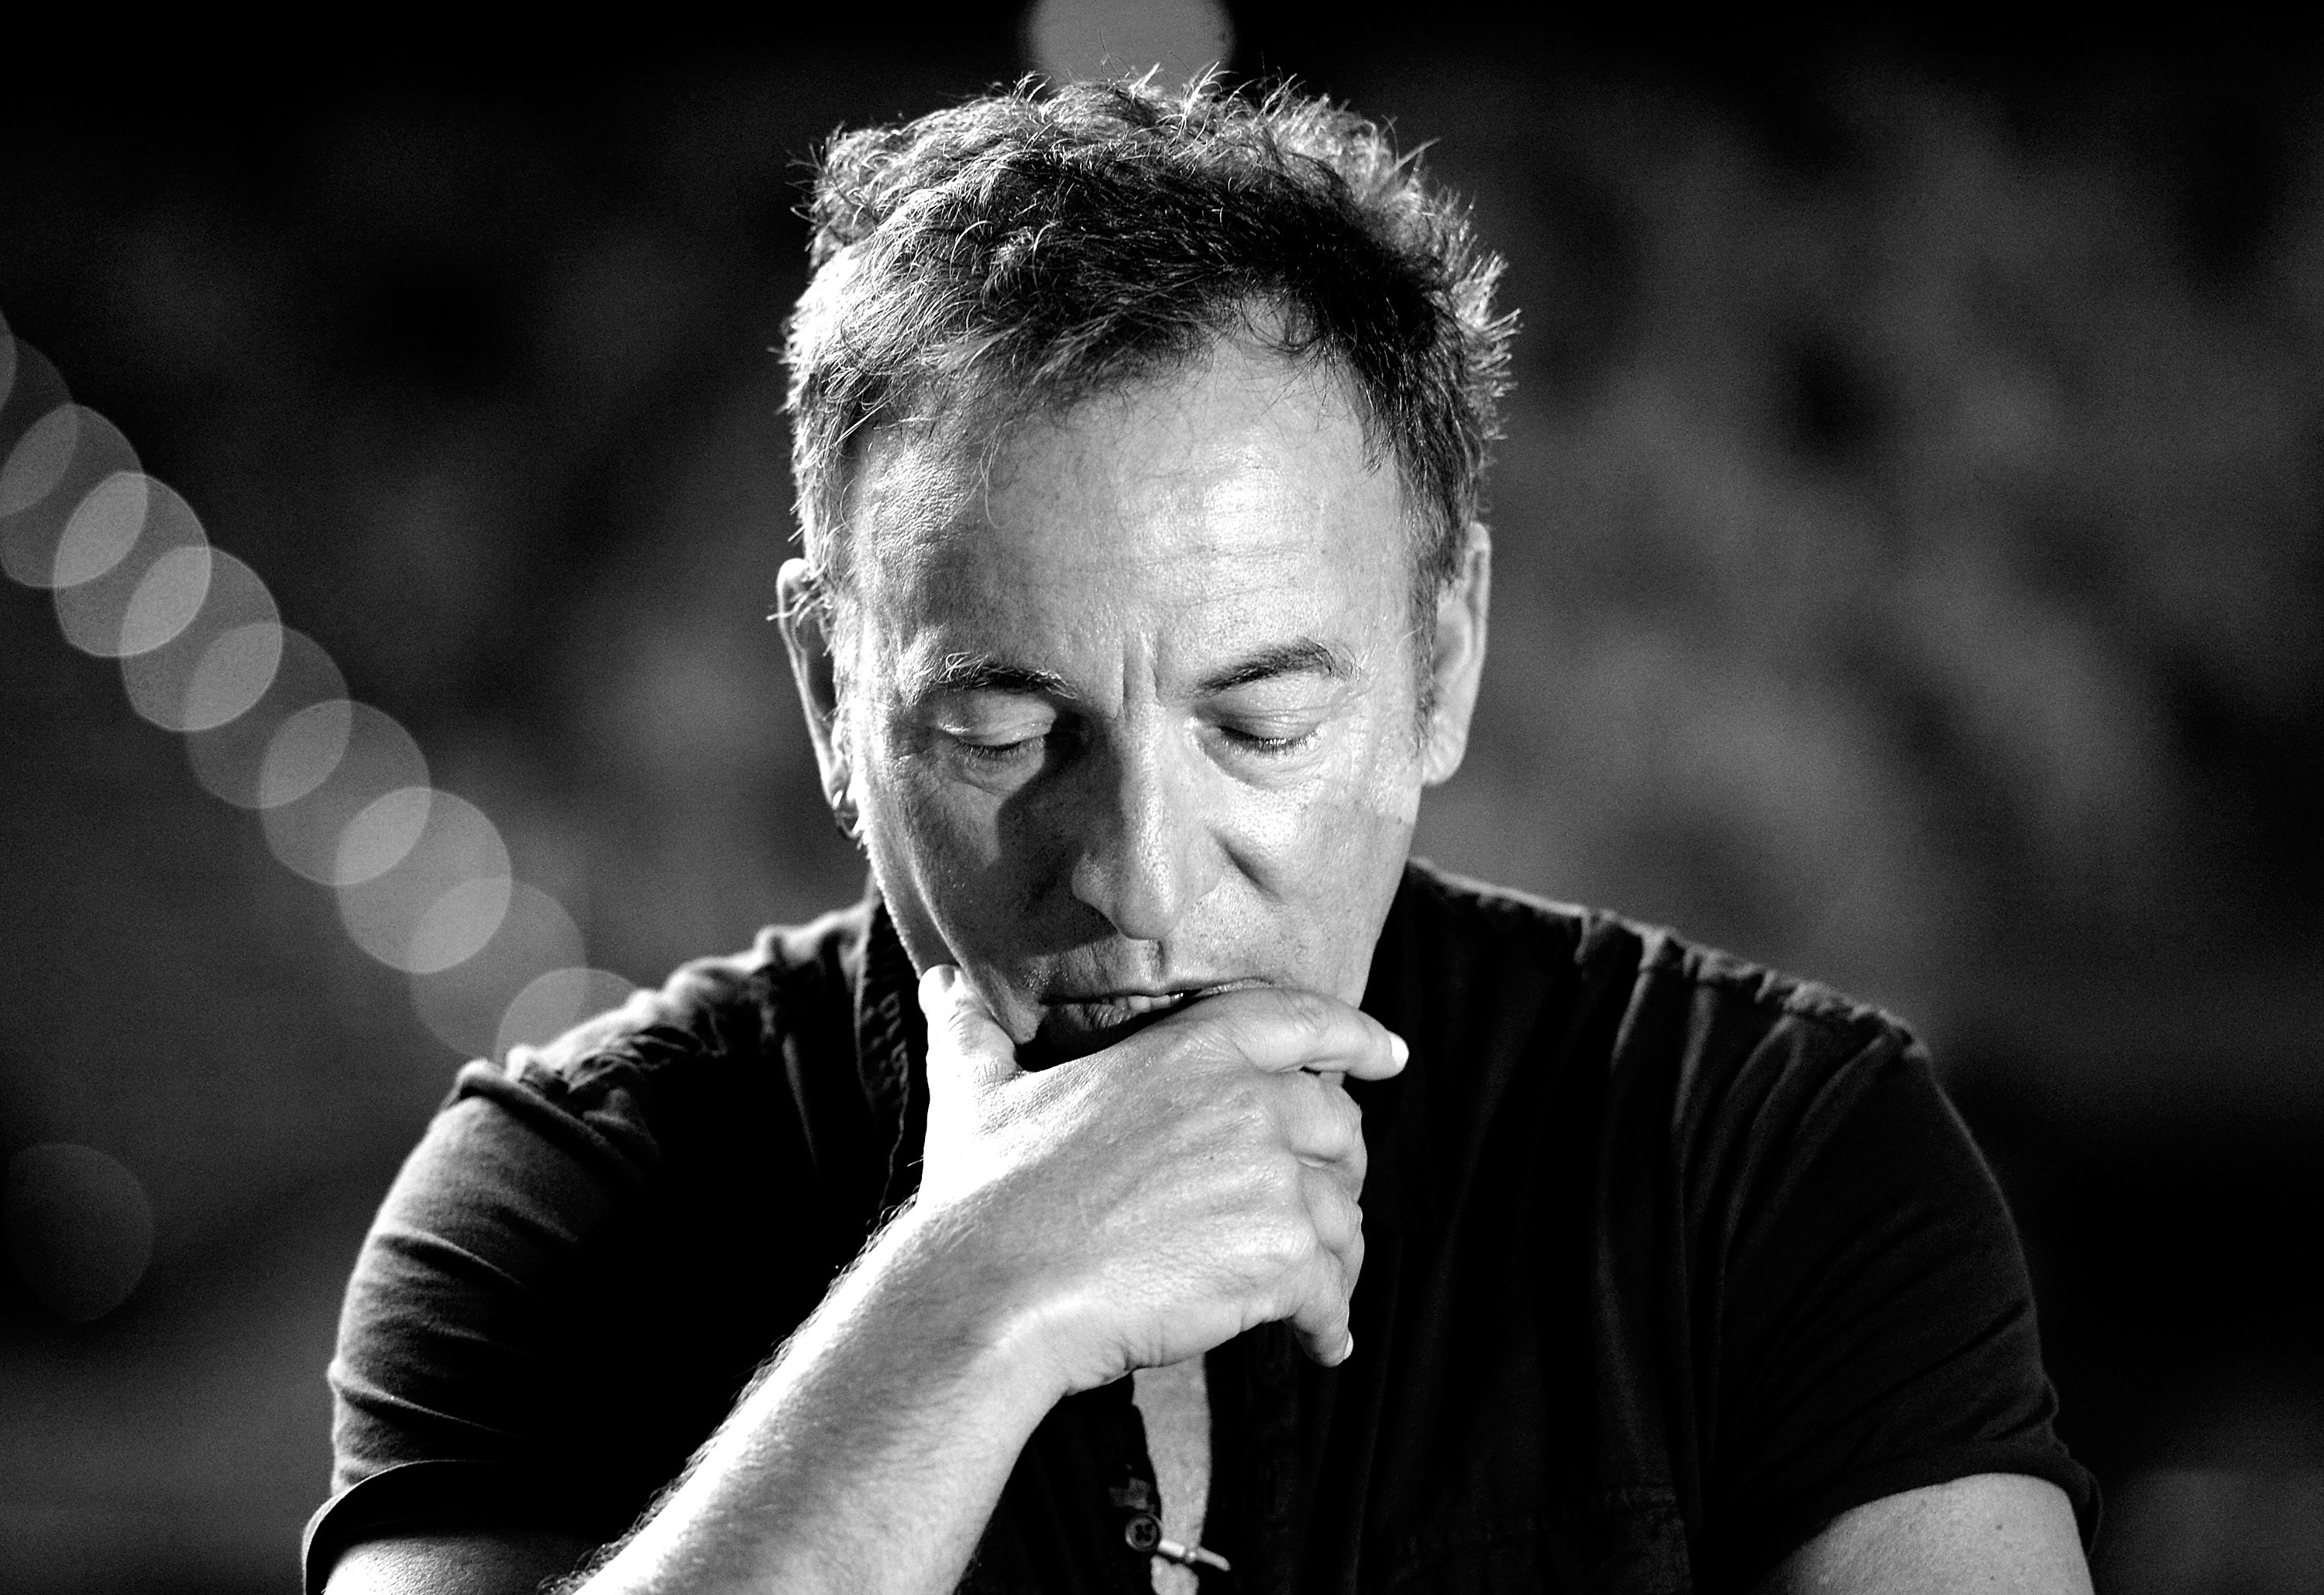 BRISBANE, AUSTRALIA - MARCH 14:  (Editor's note: This digital image has been converted to black & white) Bruce Springstee